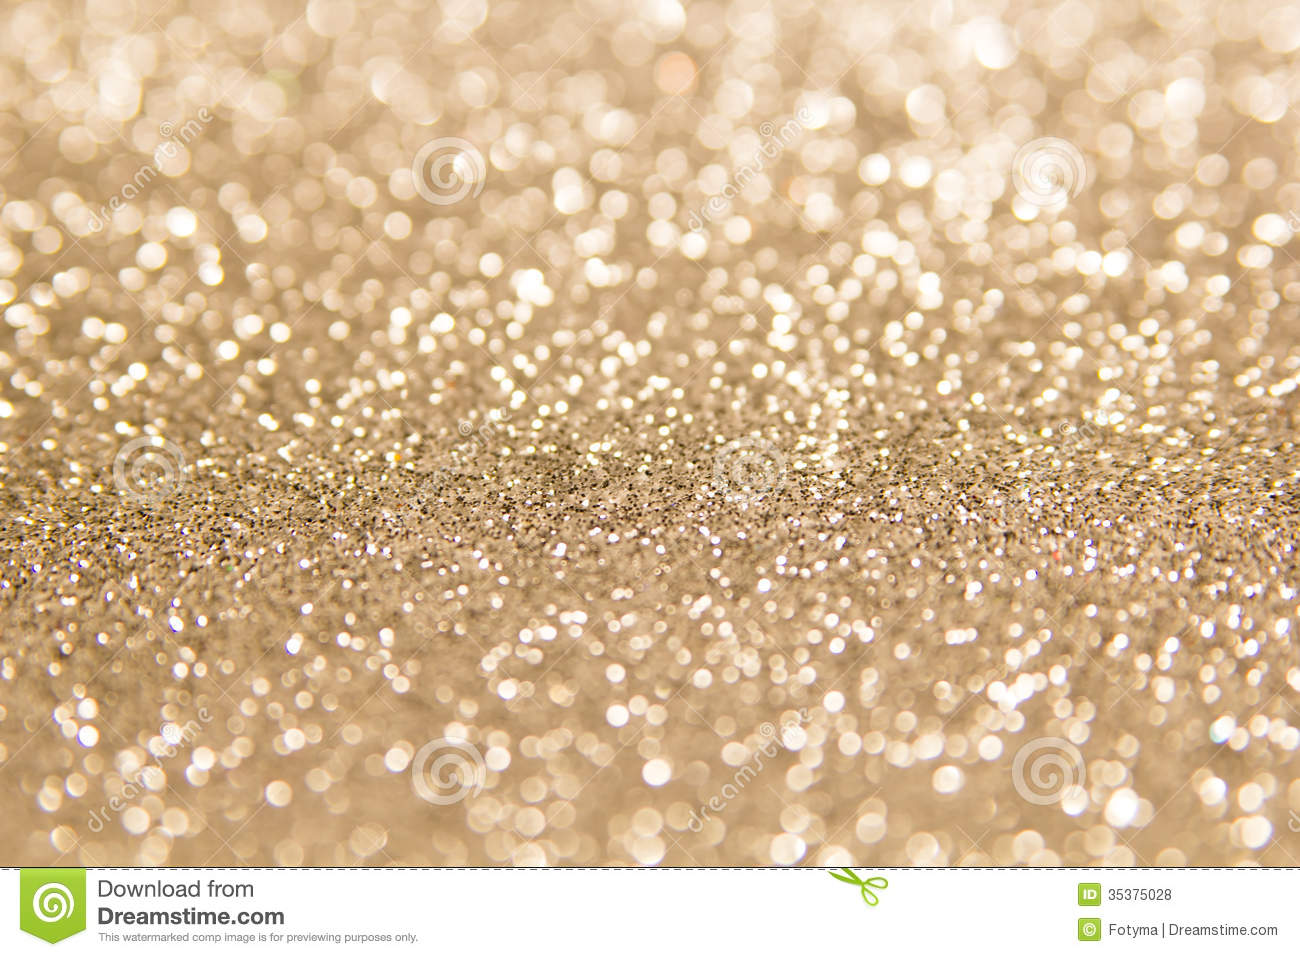 defocused-background-abstract-gold-silver-35375028